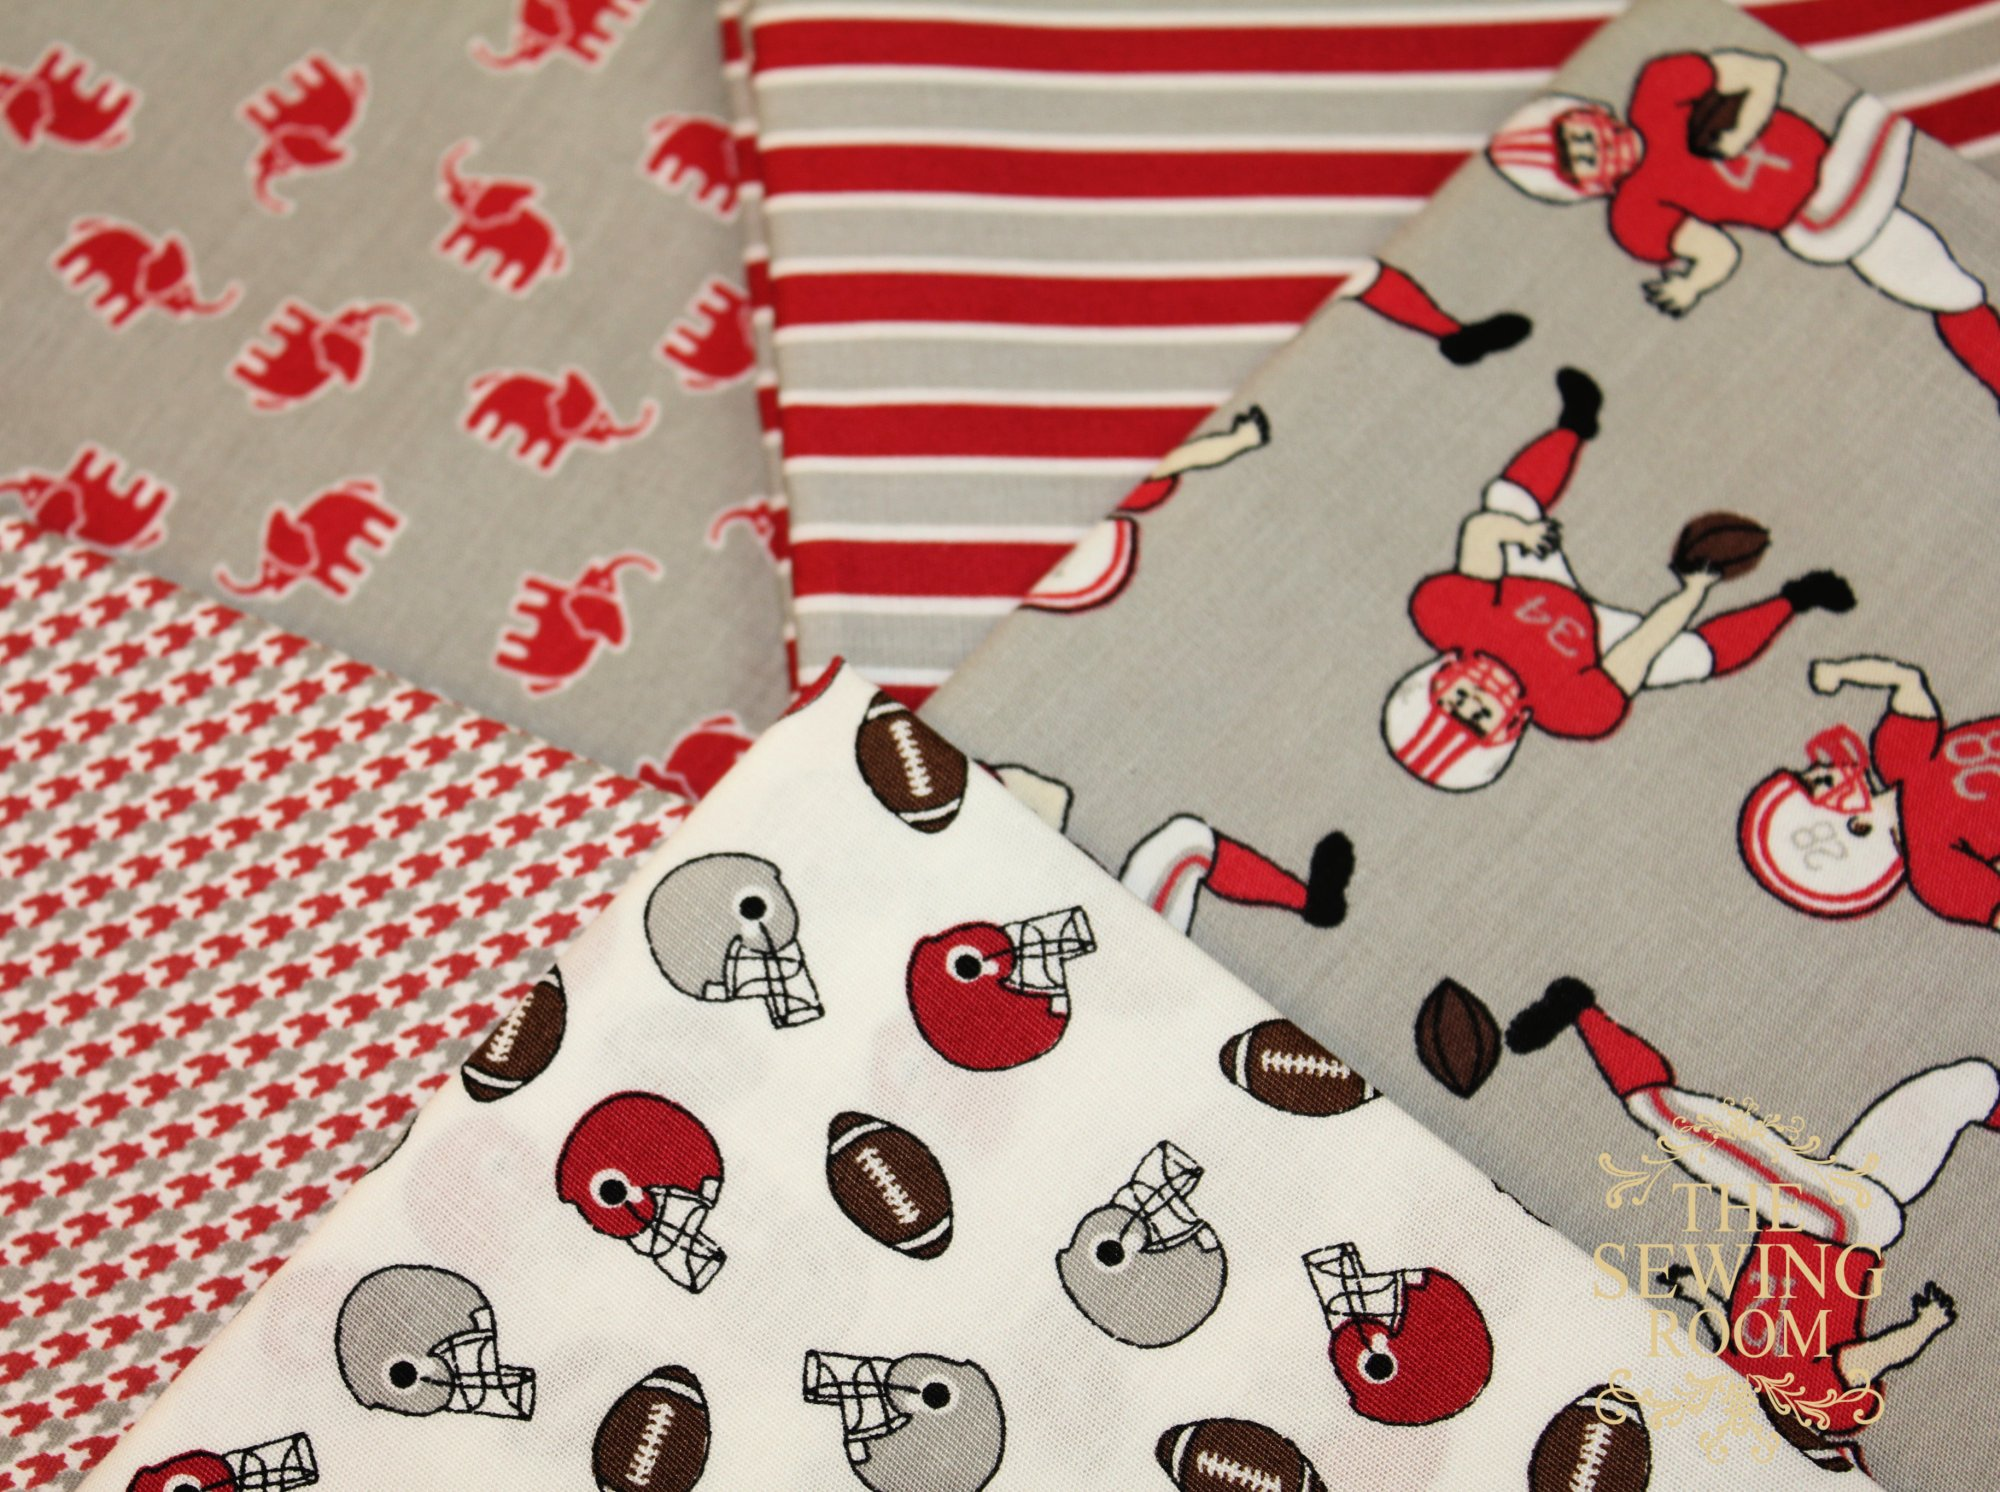 Gameday Fat Quarter Bundle - Red, White and Grey